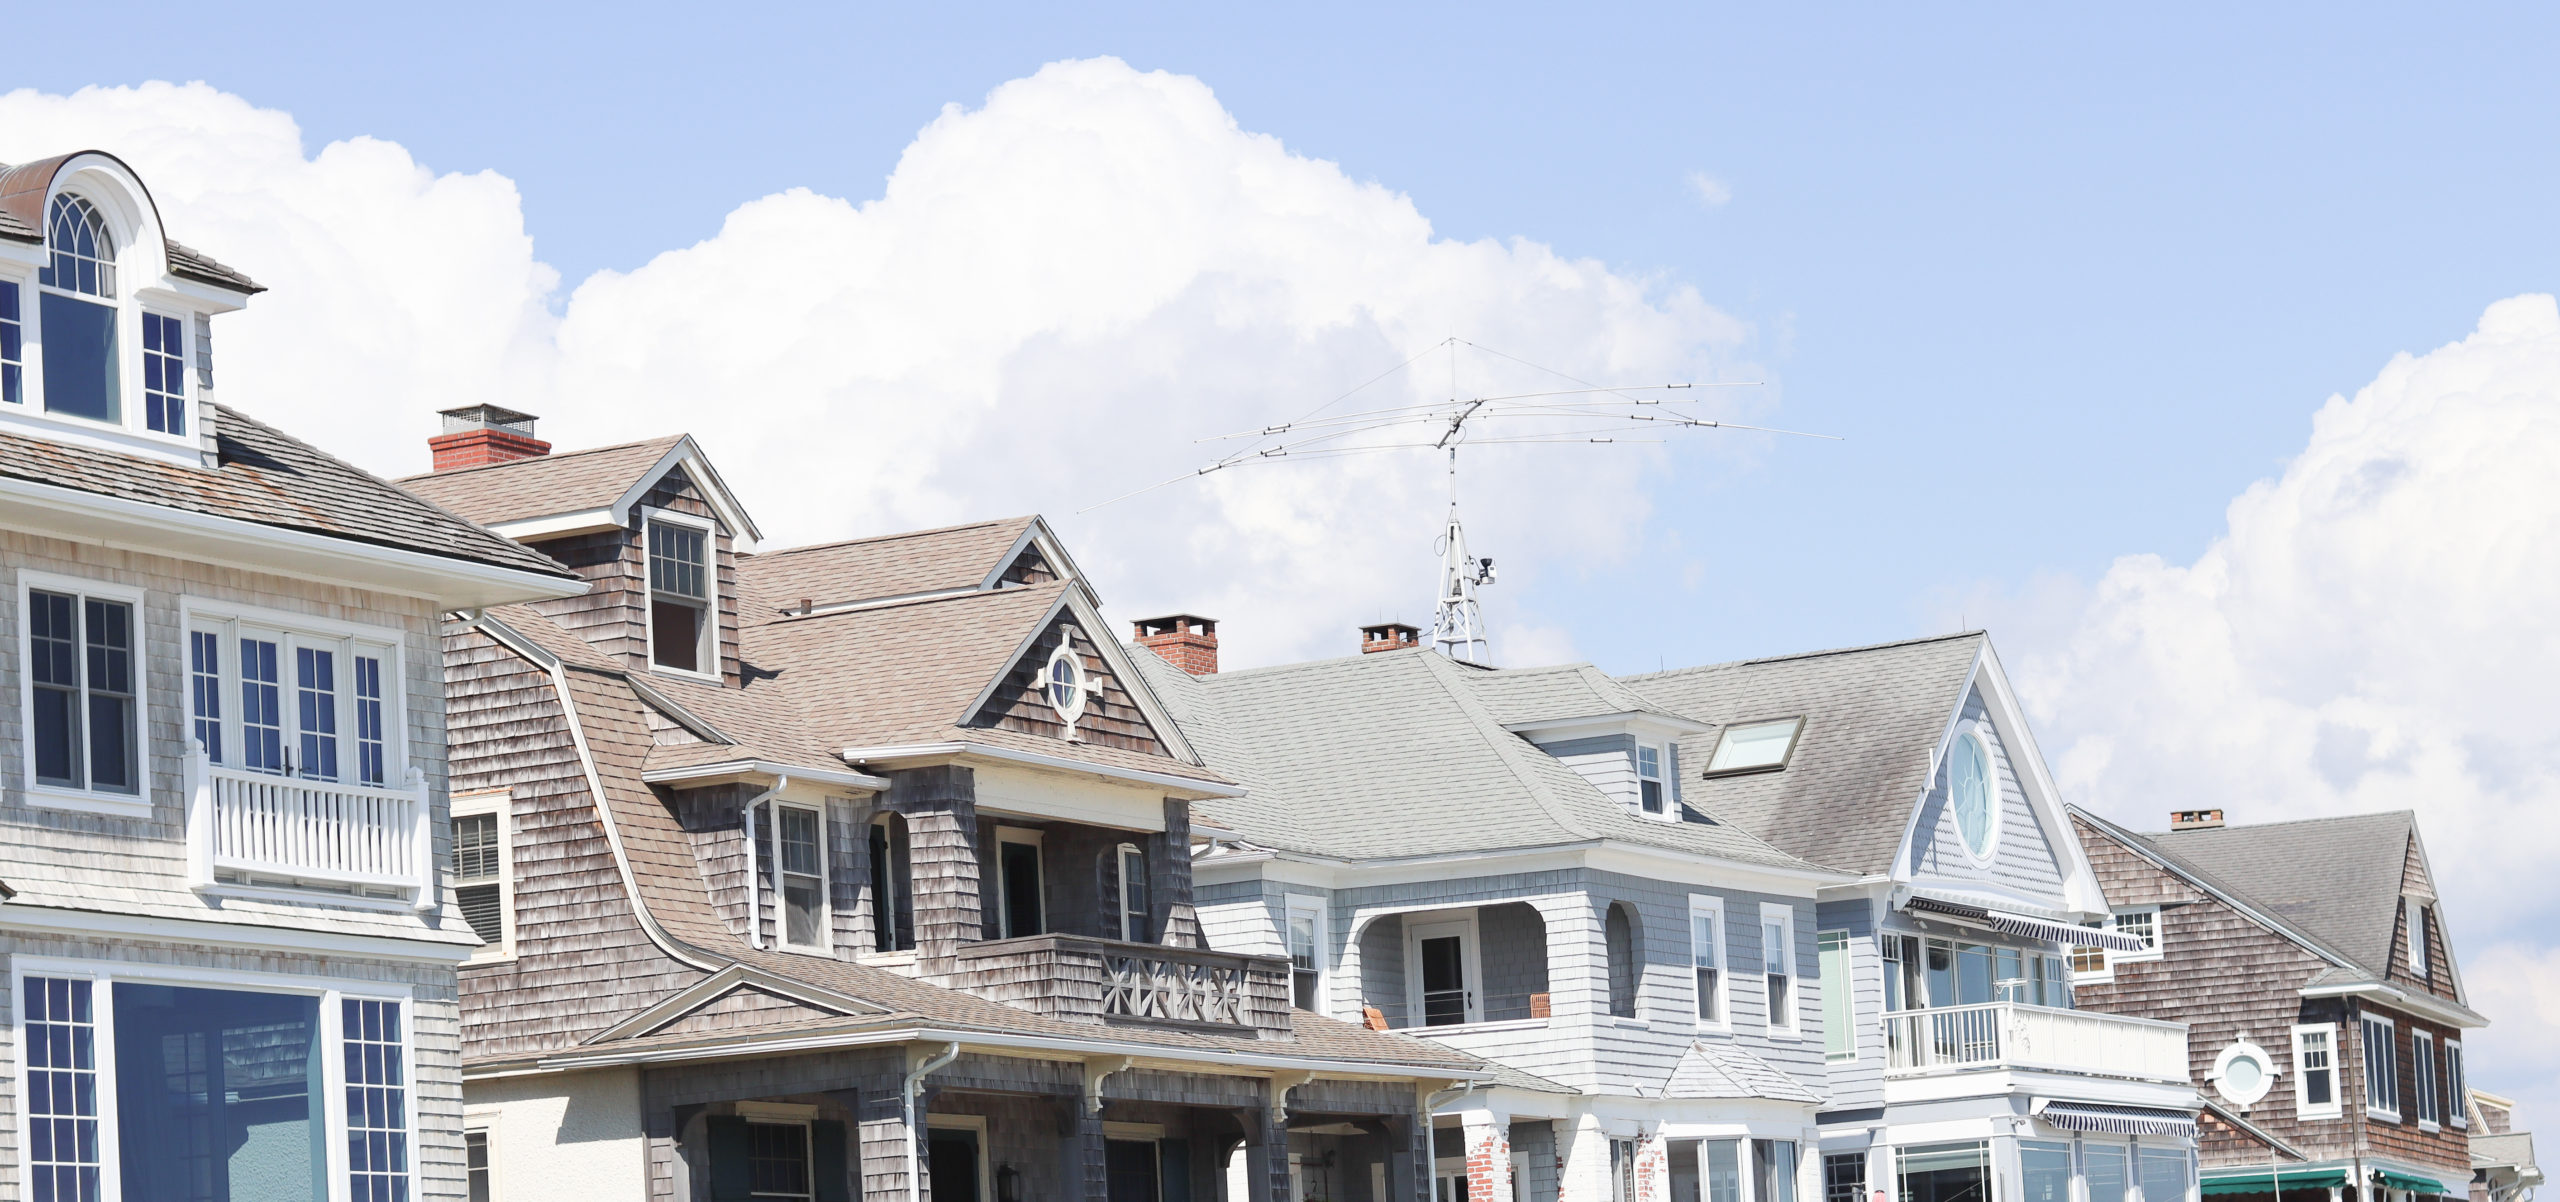 A row of pastel beach houses in Mystic, a popular summer road trip destination